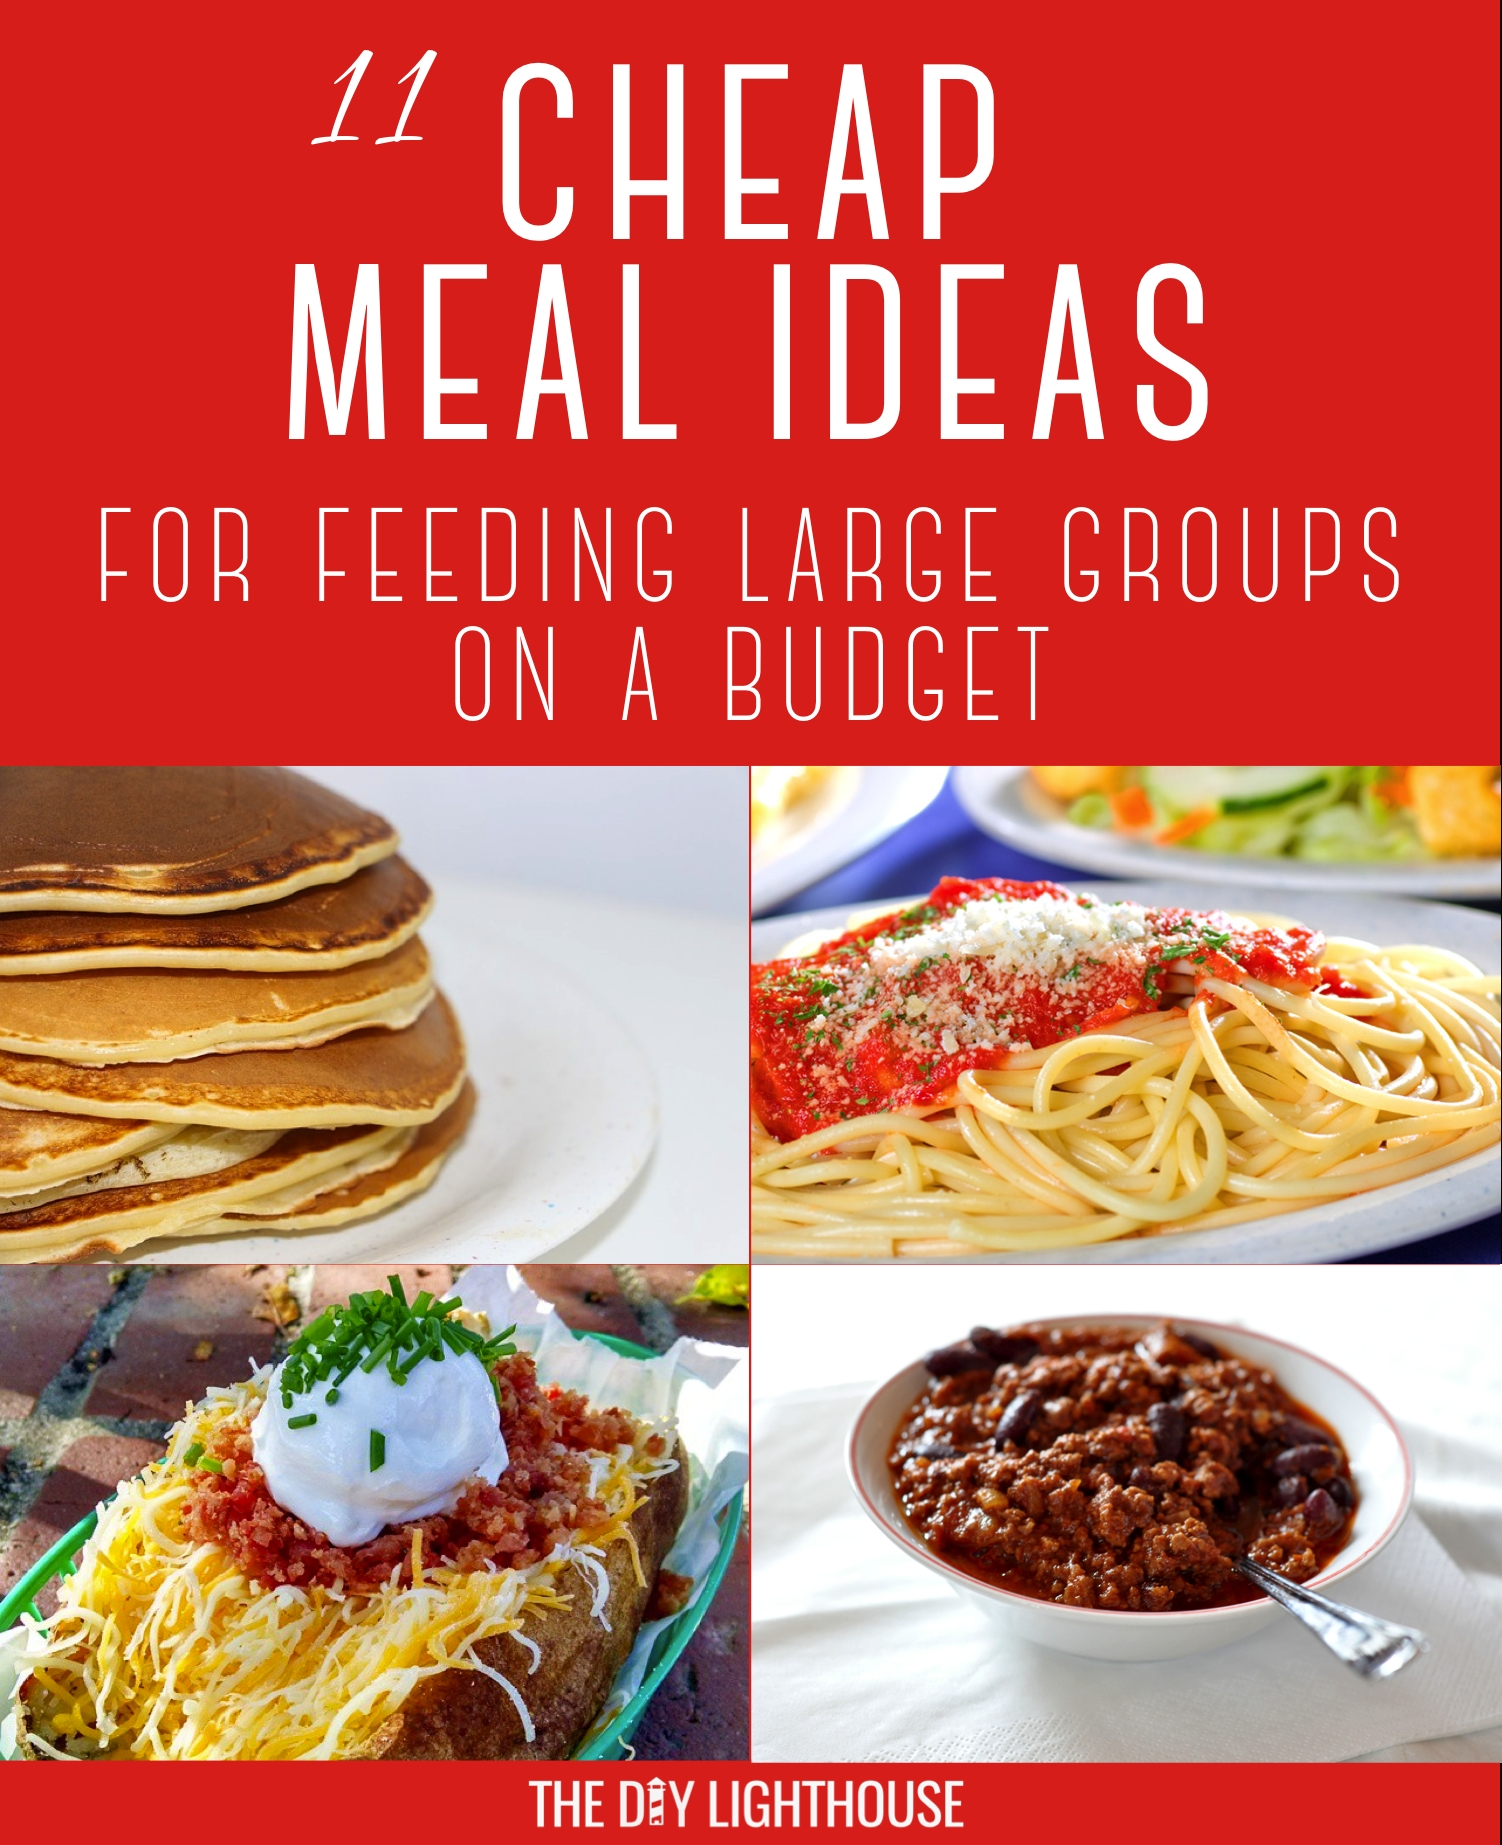 10 Nice Easy Dinner Ideas For 6 cheap meals for feeding large groups 21 2020